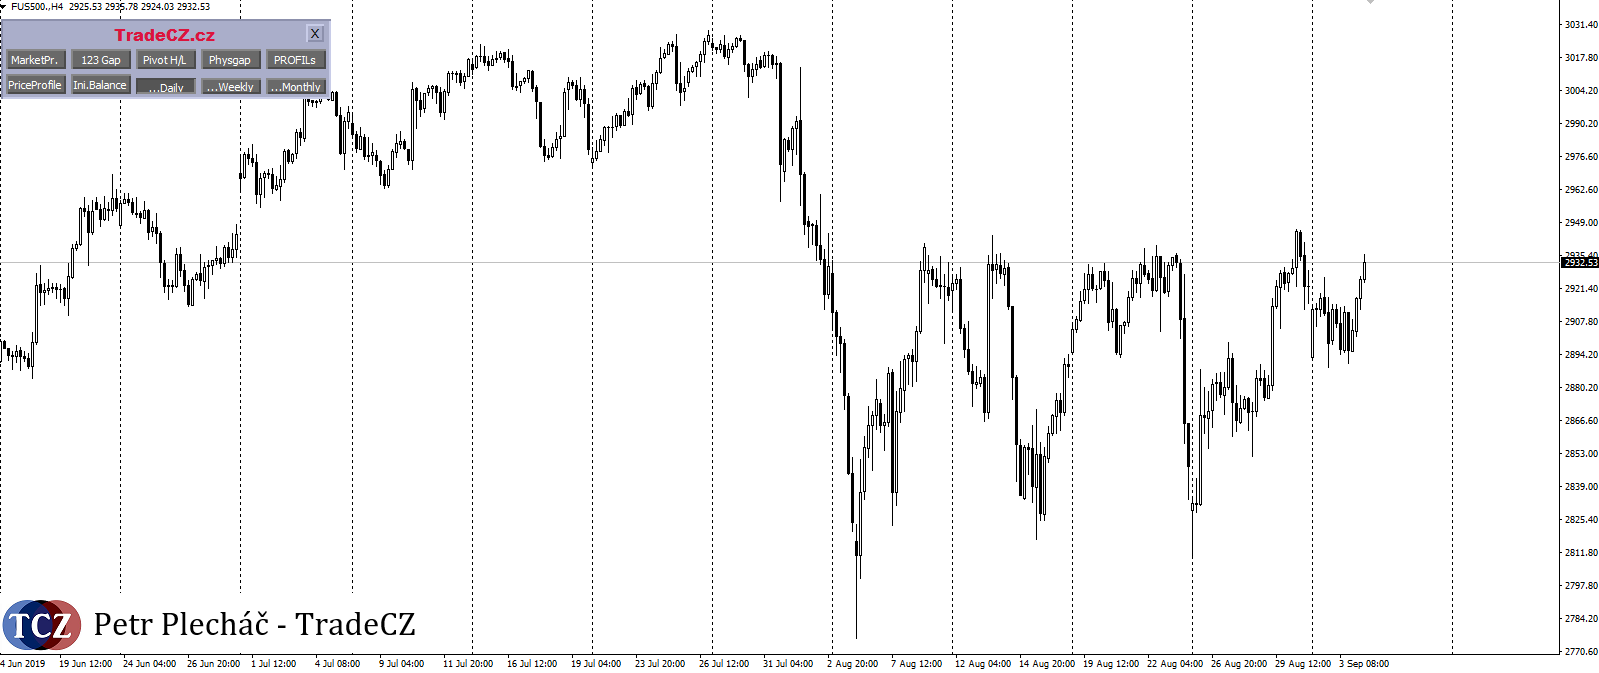 Index SP500